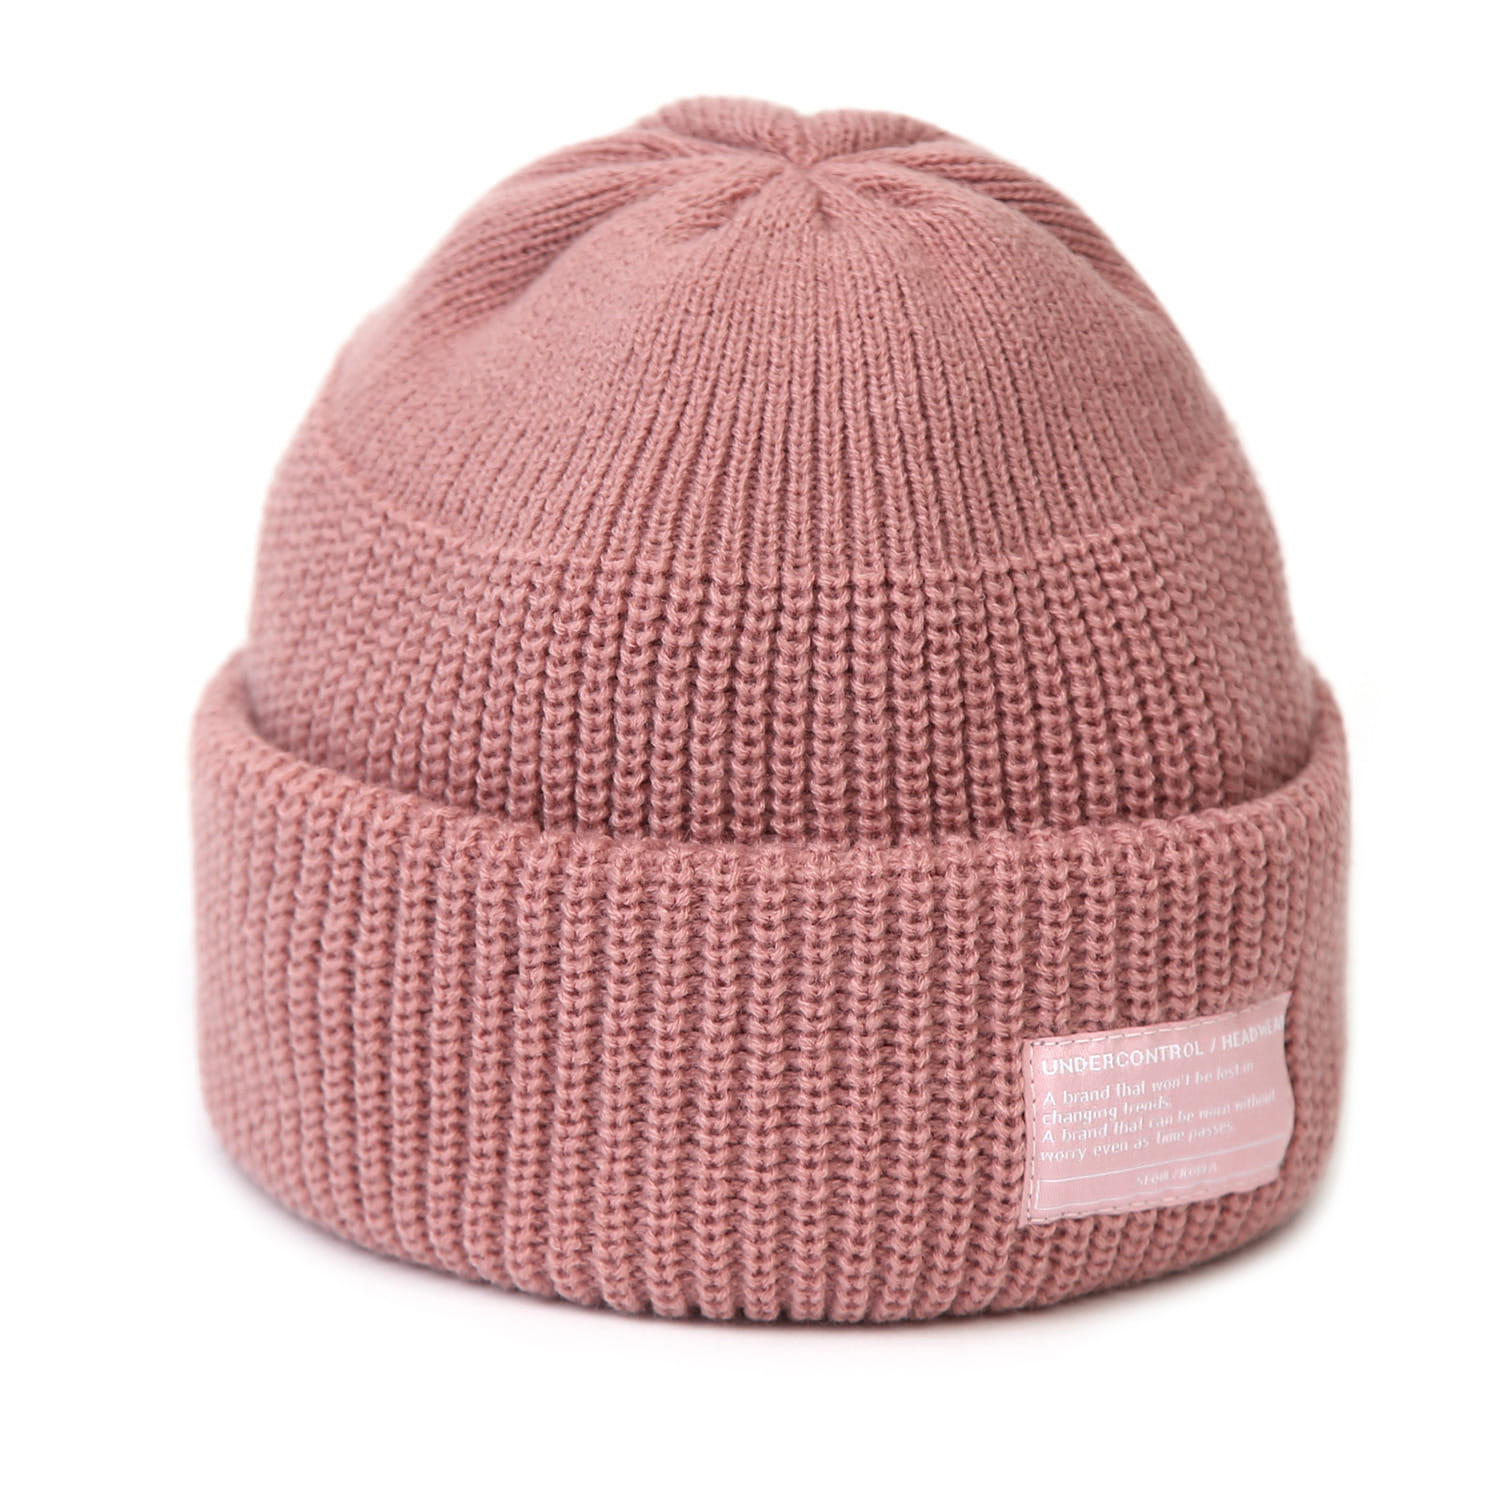 BEANIE / MONK FIT / PINK